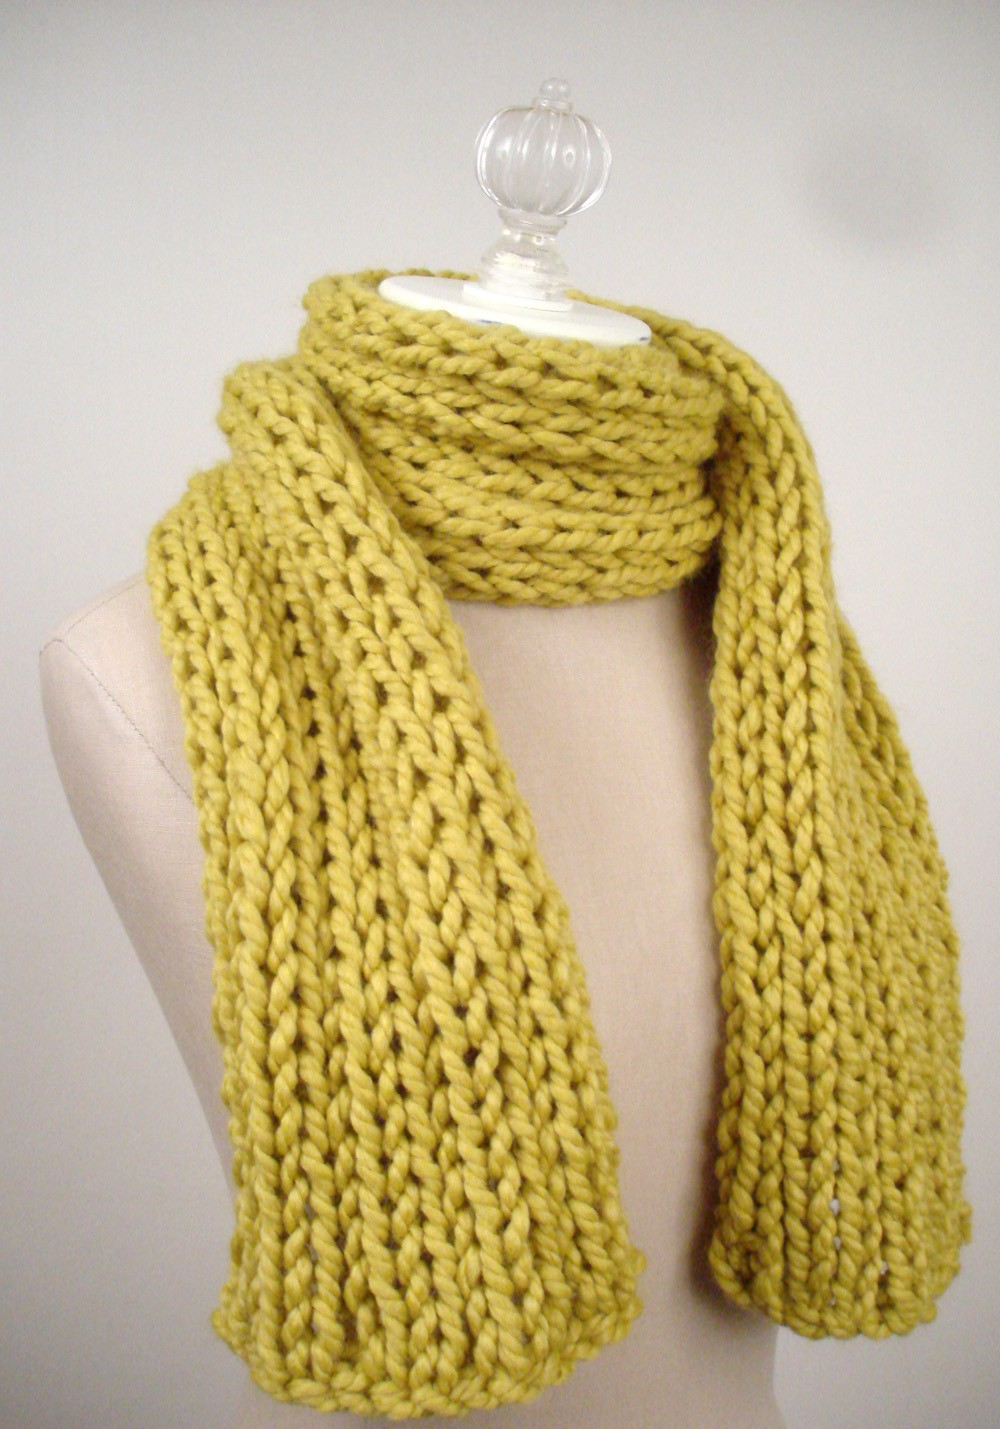 Simple Knitting Patterns : Scarf Knitting Pattern-Single-Rib Chenille Scarf Easy Knitting